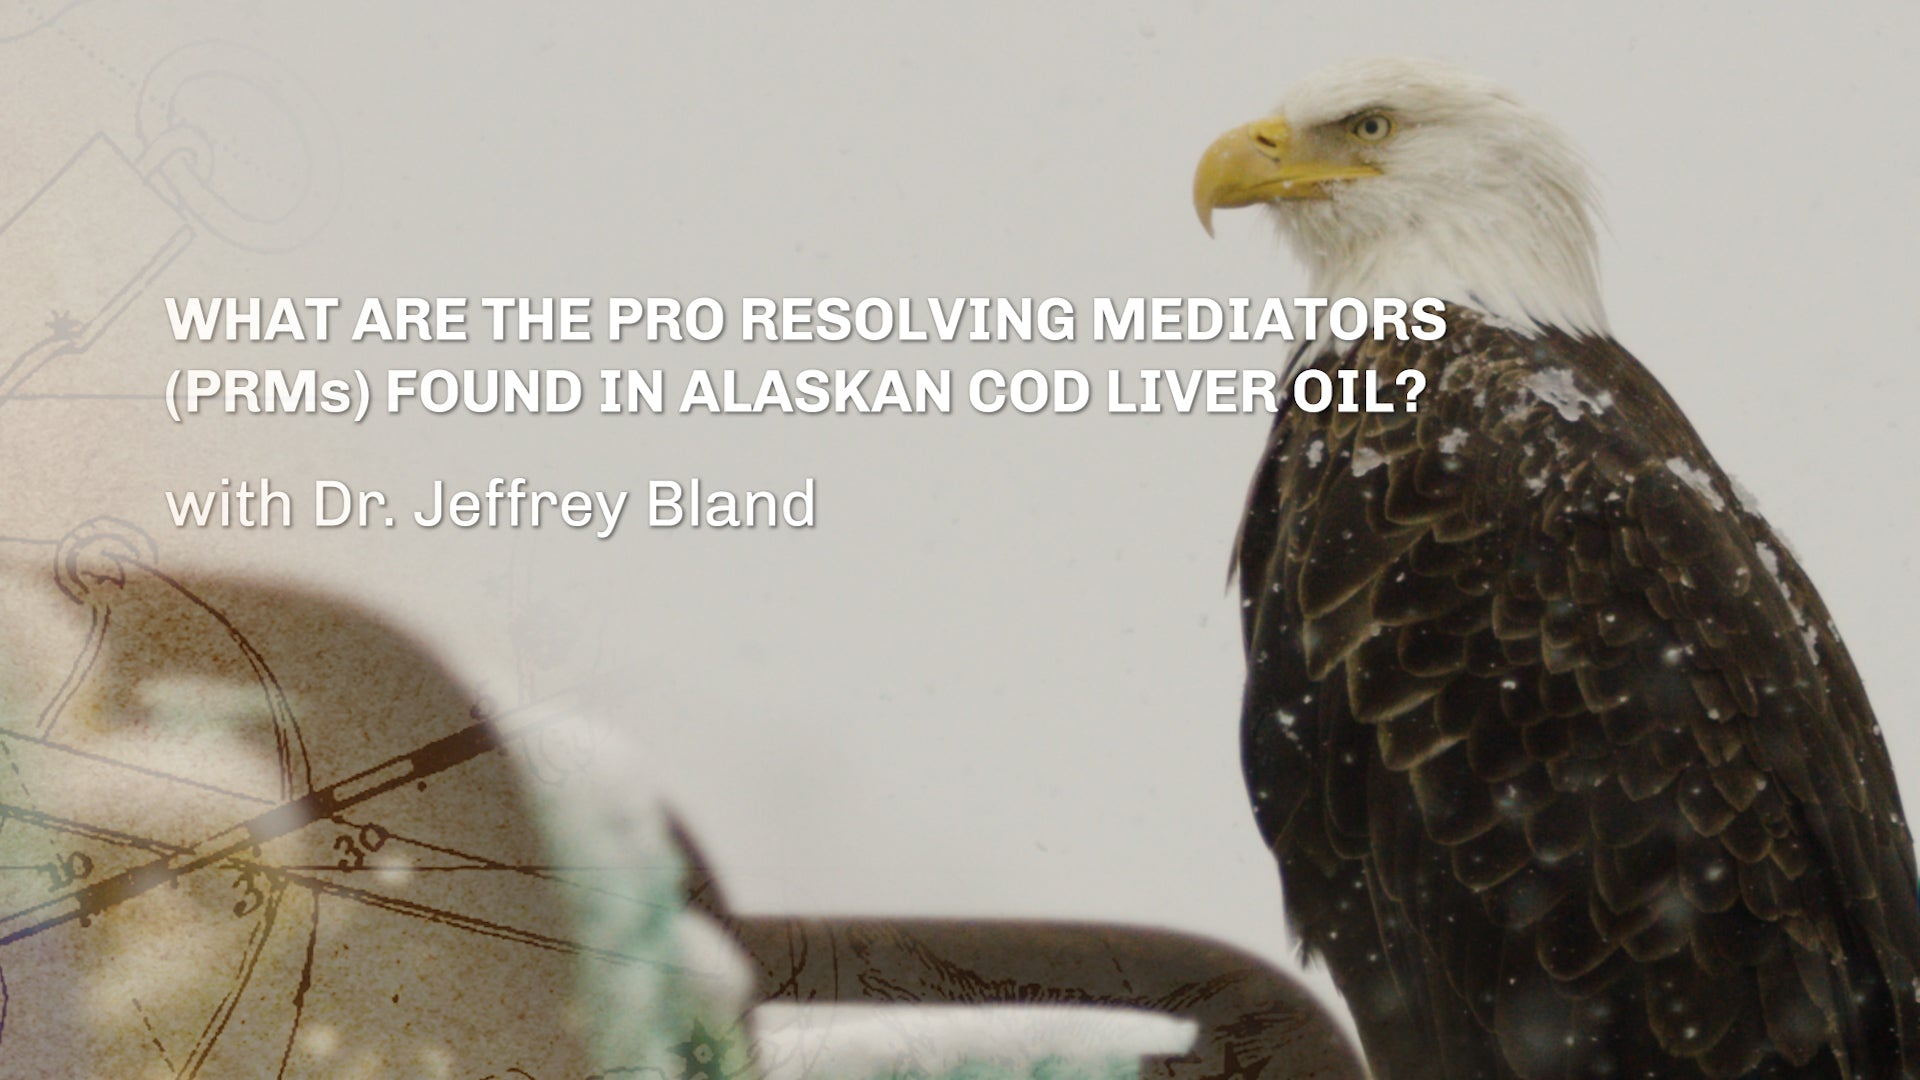 What are the Pro Resolving Mediators (PRMs) found in Alaskan Cod Liver Oil? With Dr. Jeffrey Bland